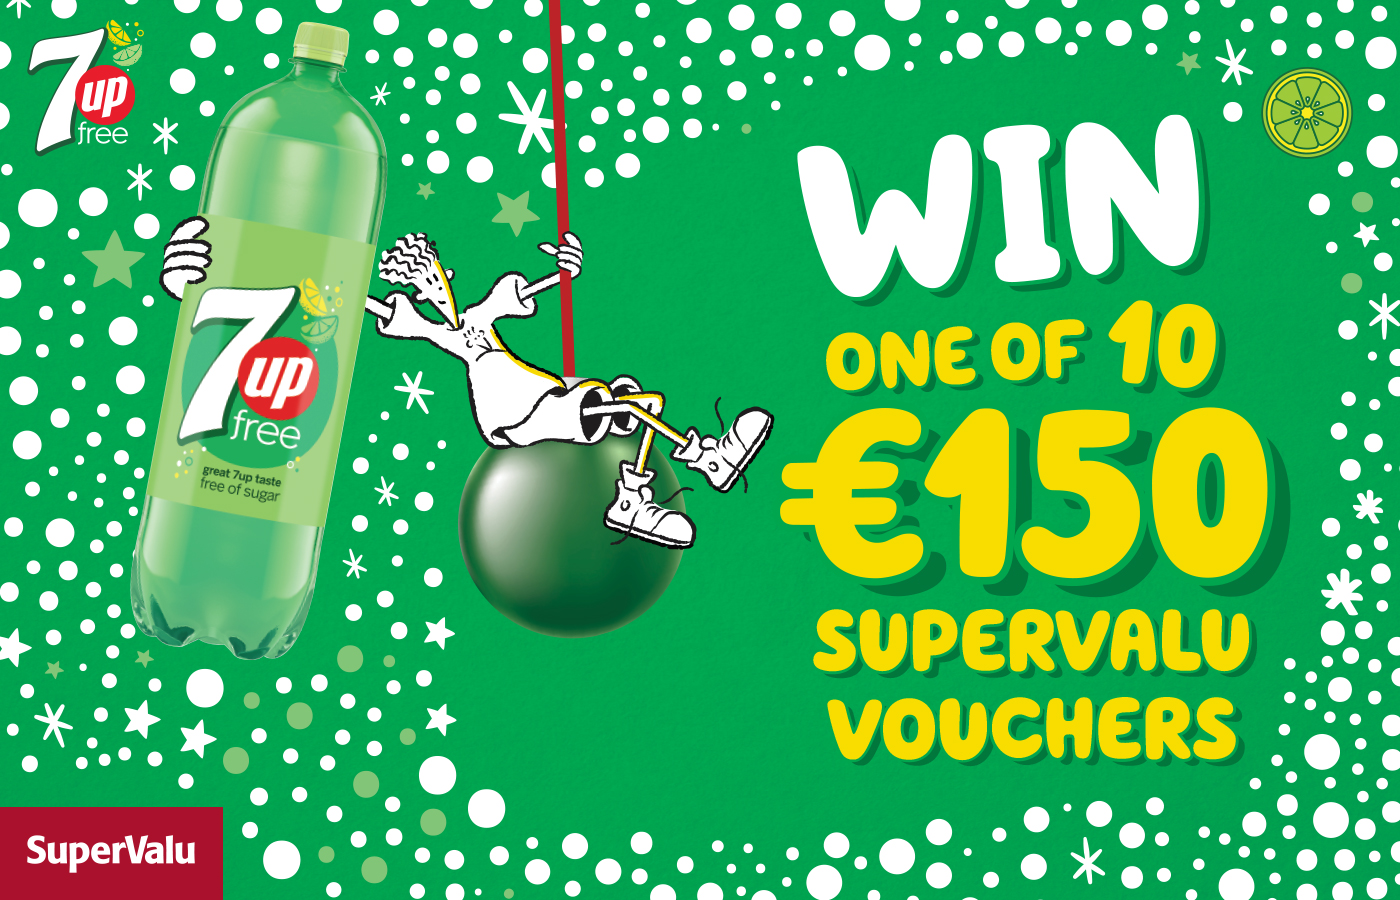 Win with 7up